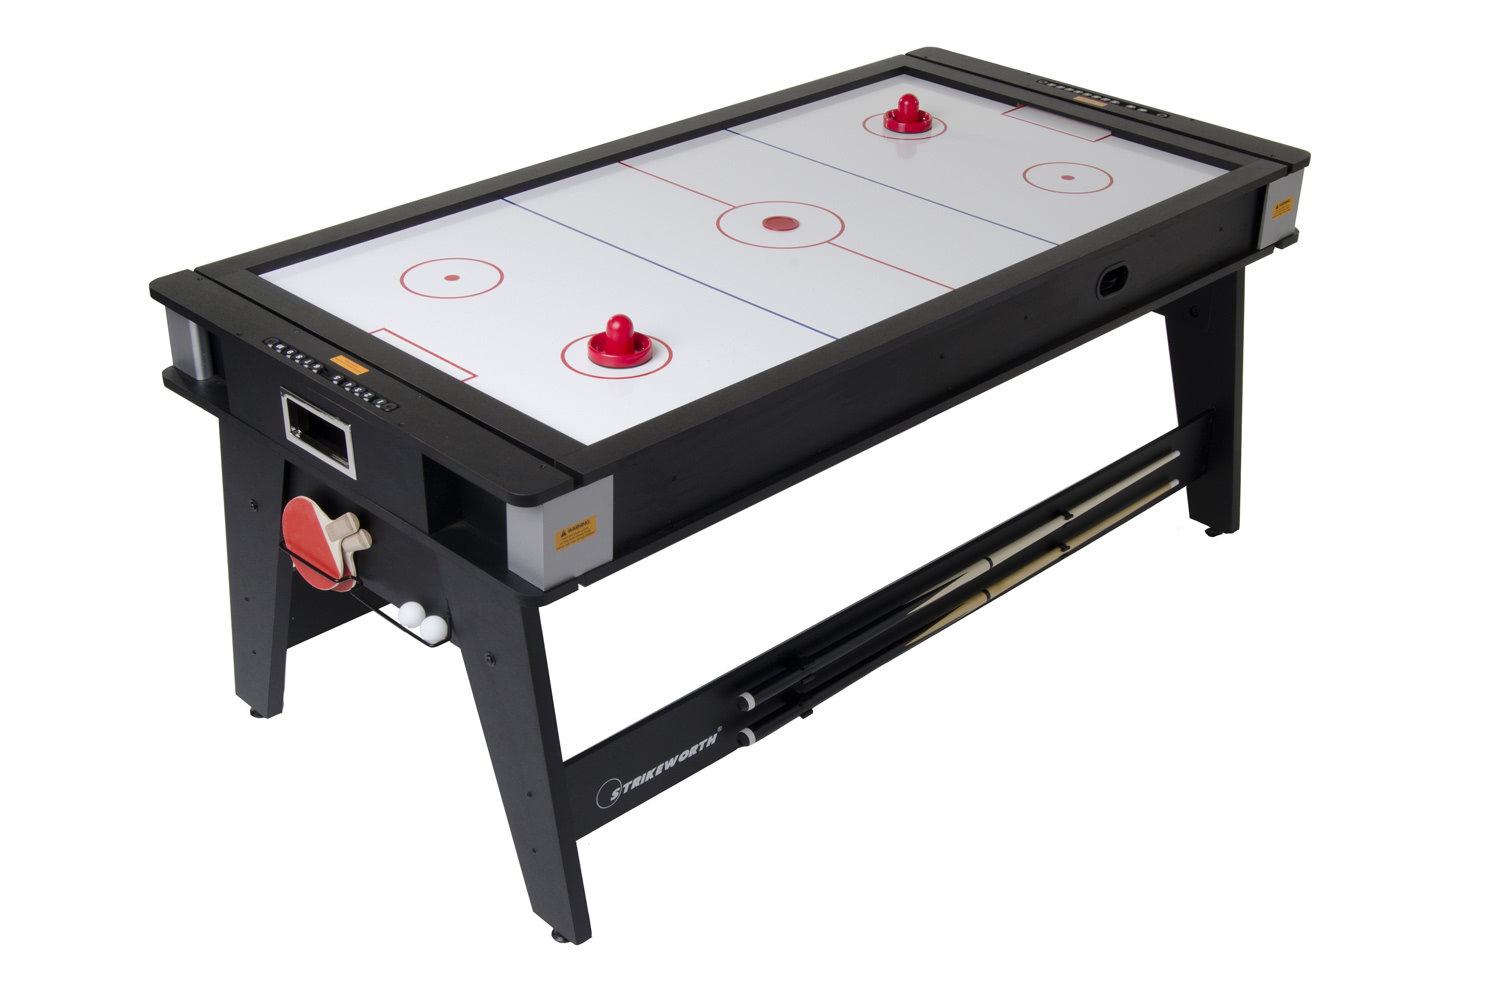 The 6ft Multi Game Air Hockey Playfield